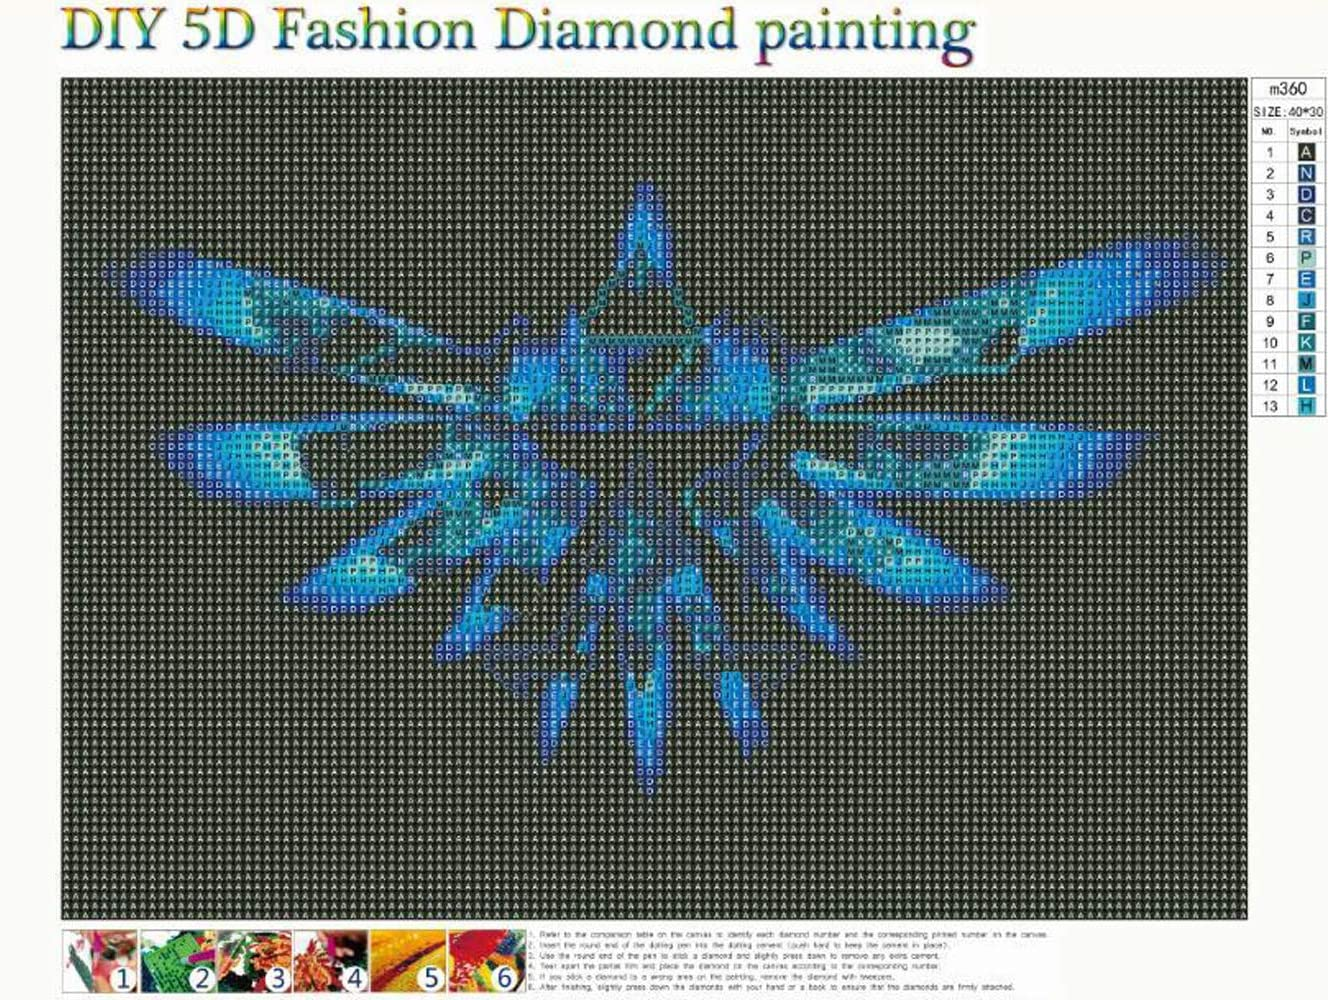 DIY 5D Diamond Painting by Number Kits Full Round Drill Rhinestone Embroidery Cross Stitch Picture Art Craft Home Wall Decor Blue Armor 12x16In